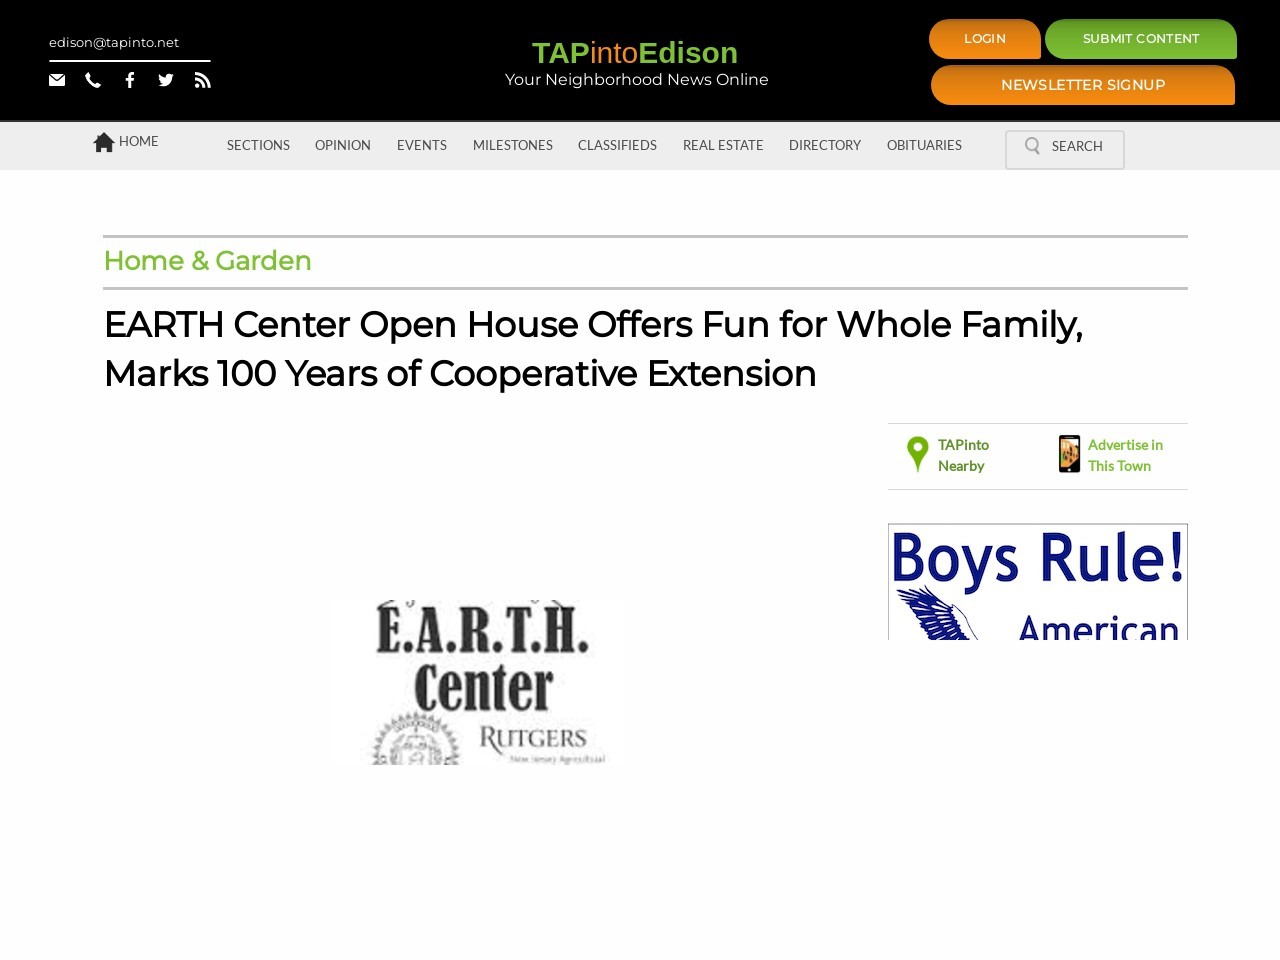 EARTH Center Open House Offers Fun for Whole Family, Marks 100 Years of …